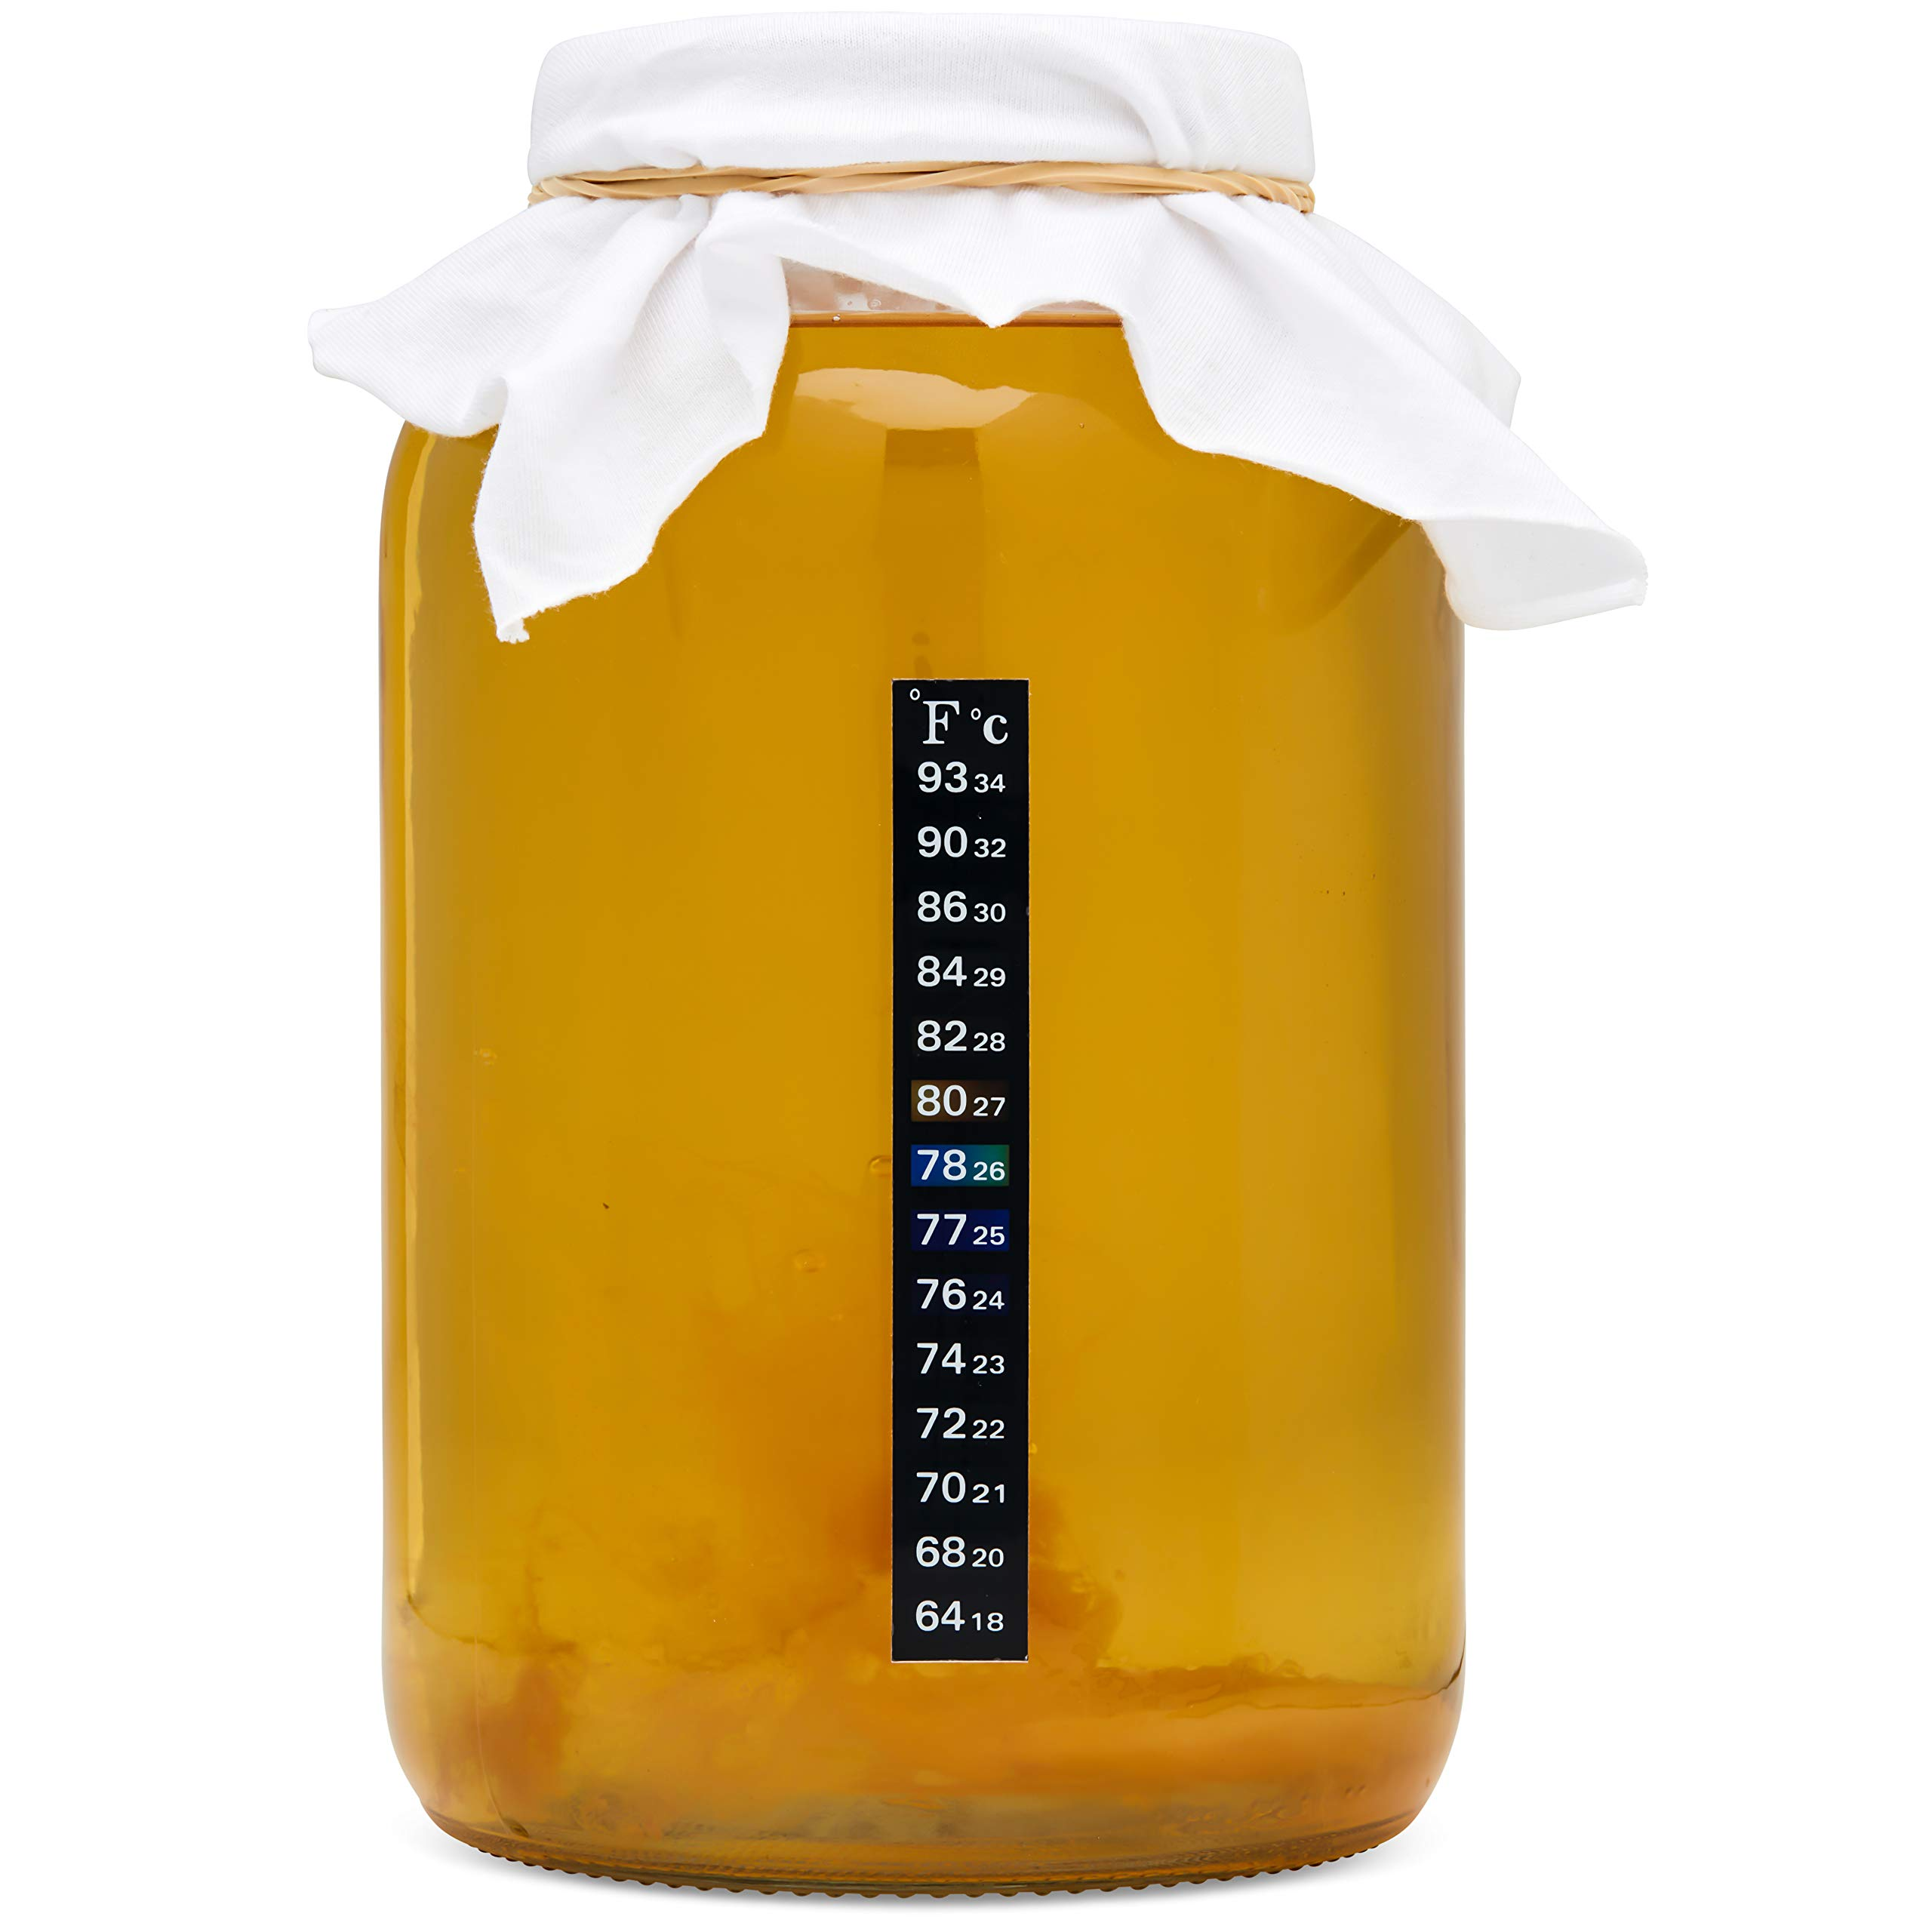 Kombucha Starter Kit .Premium Kombucha Brewing Ingredients included and Fresh Kombucha SCOBY, Durable Glass 1 Gallon Mason Jar, Temp Strip, PH Tests and Funnel included by Miloo (Image #7)